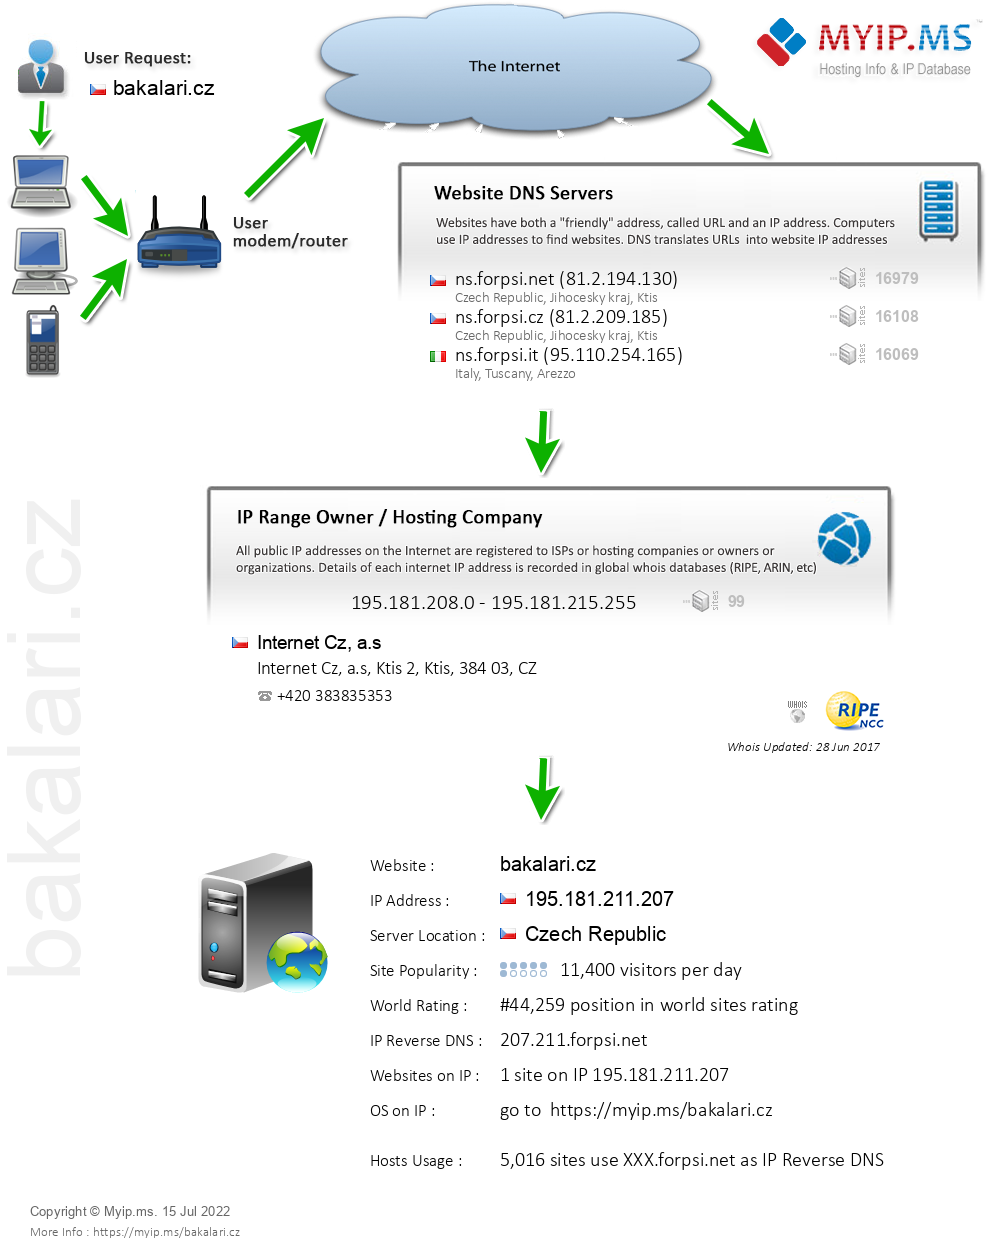 Bakalari.cz - Website Hosting Visual IP Diagram